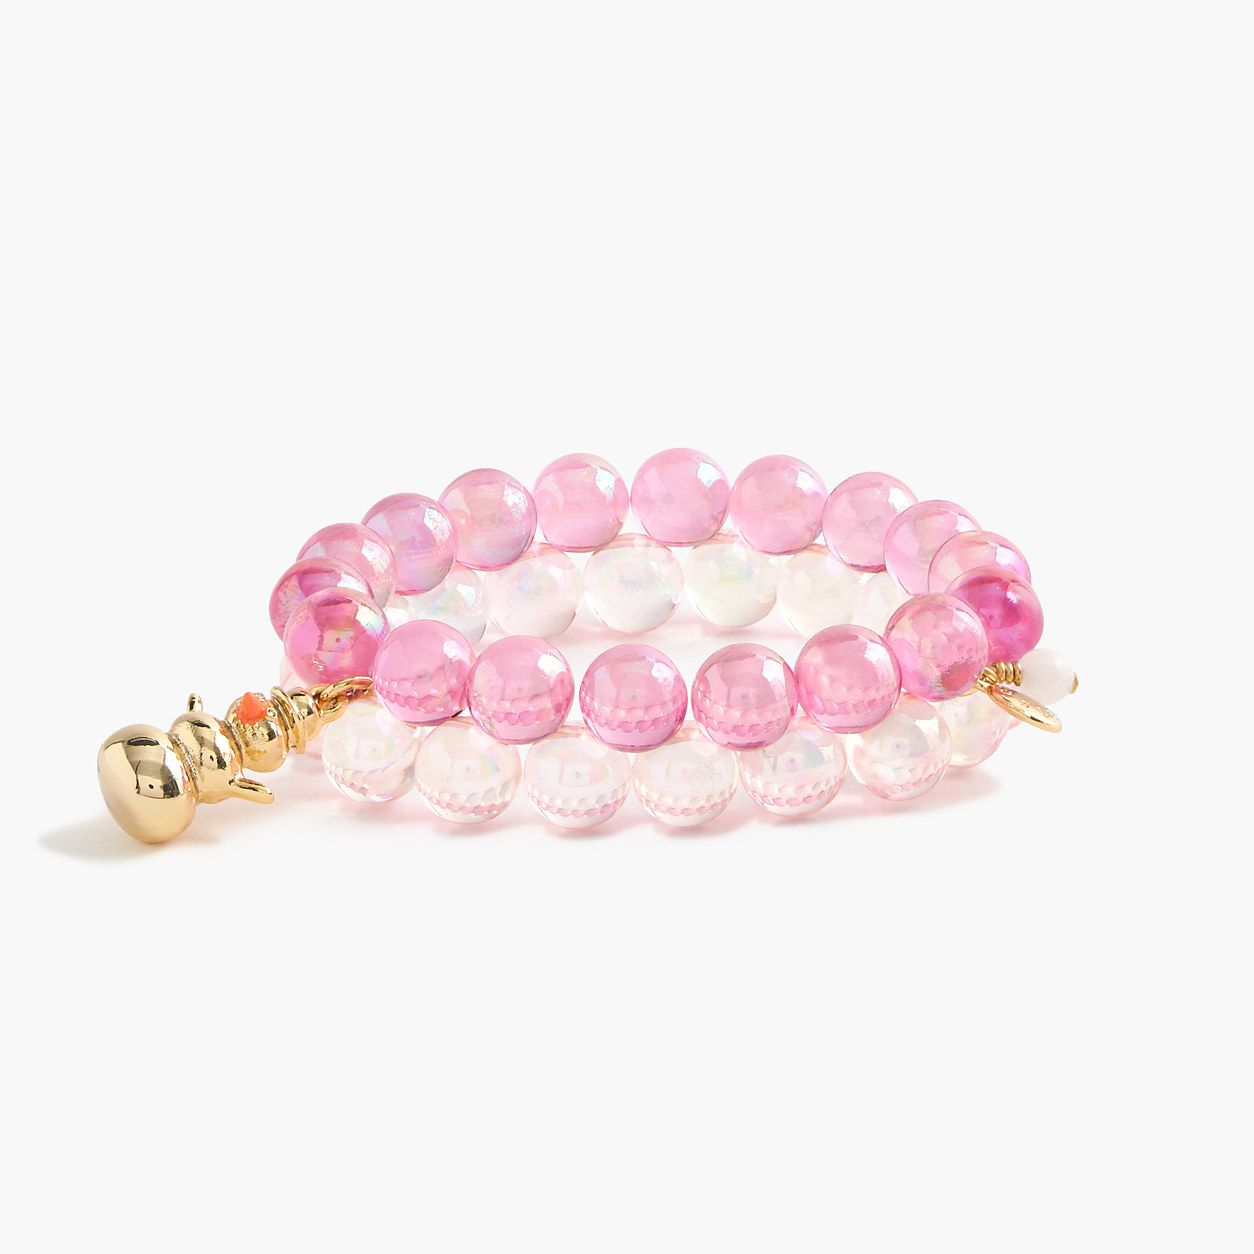 Girlsu winter gumball bracelet gumball and products